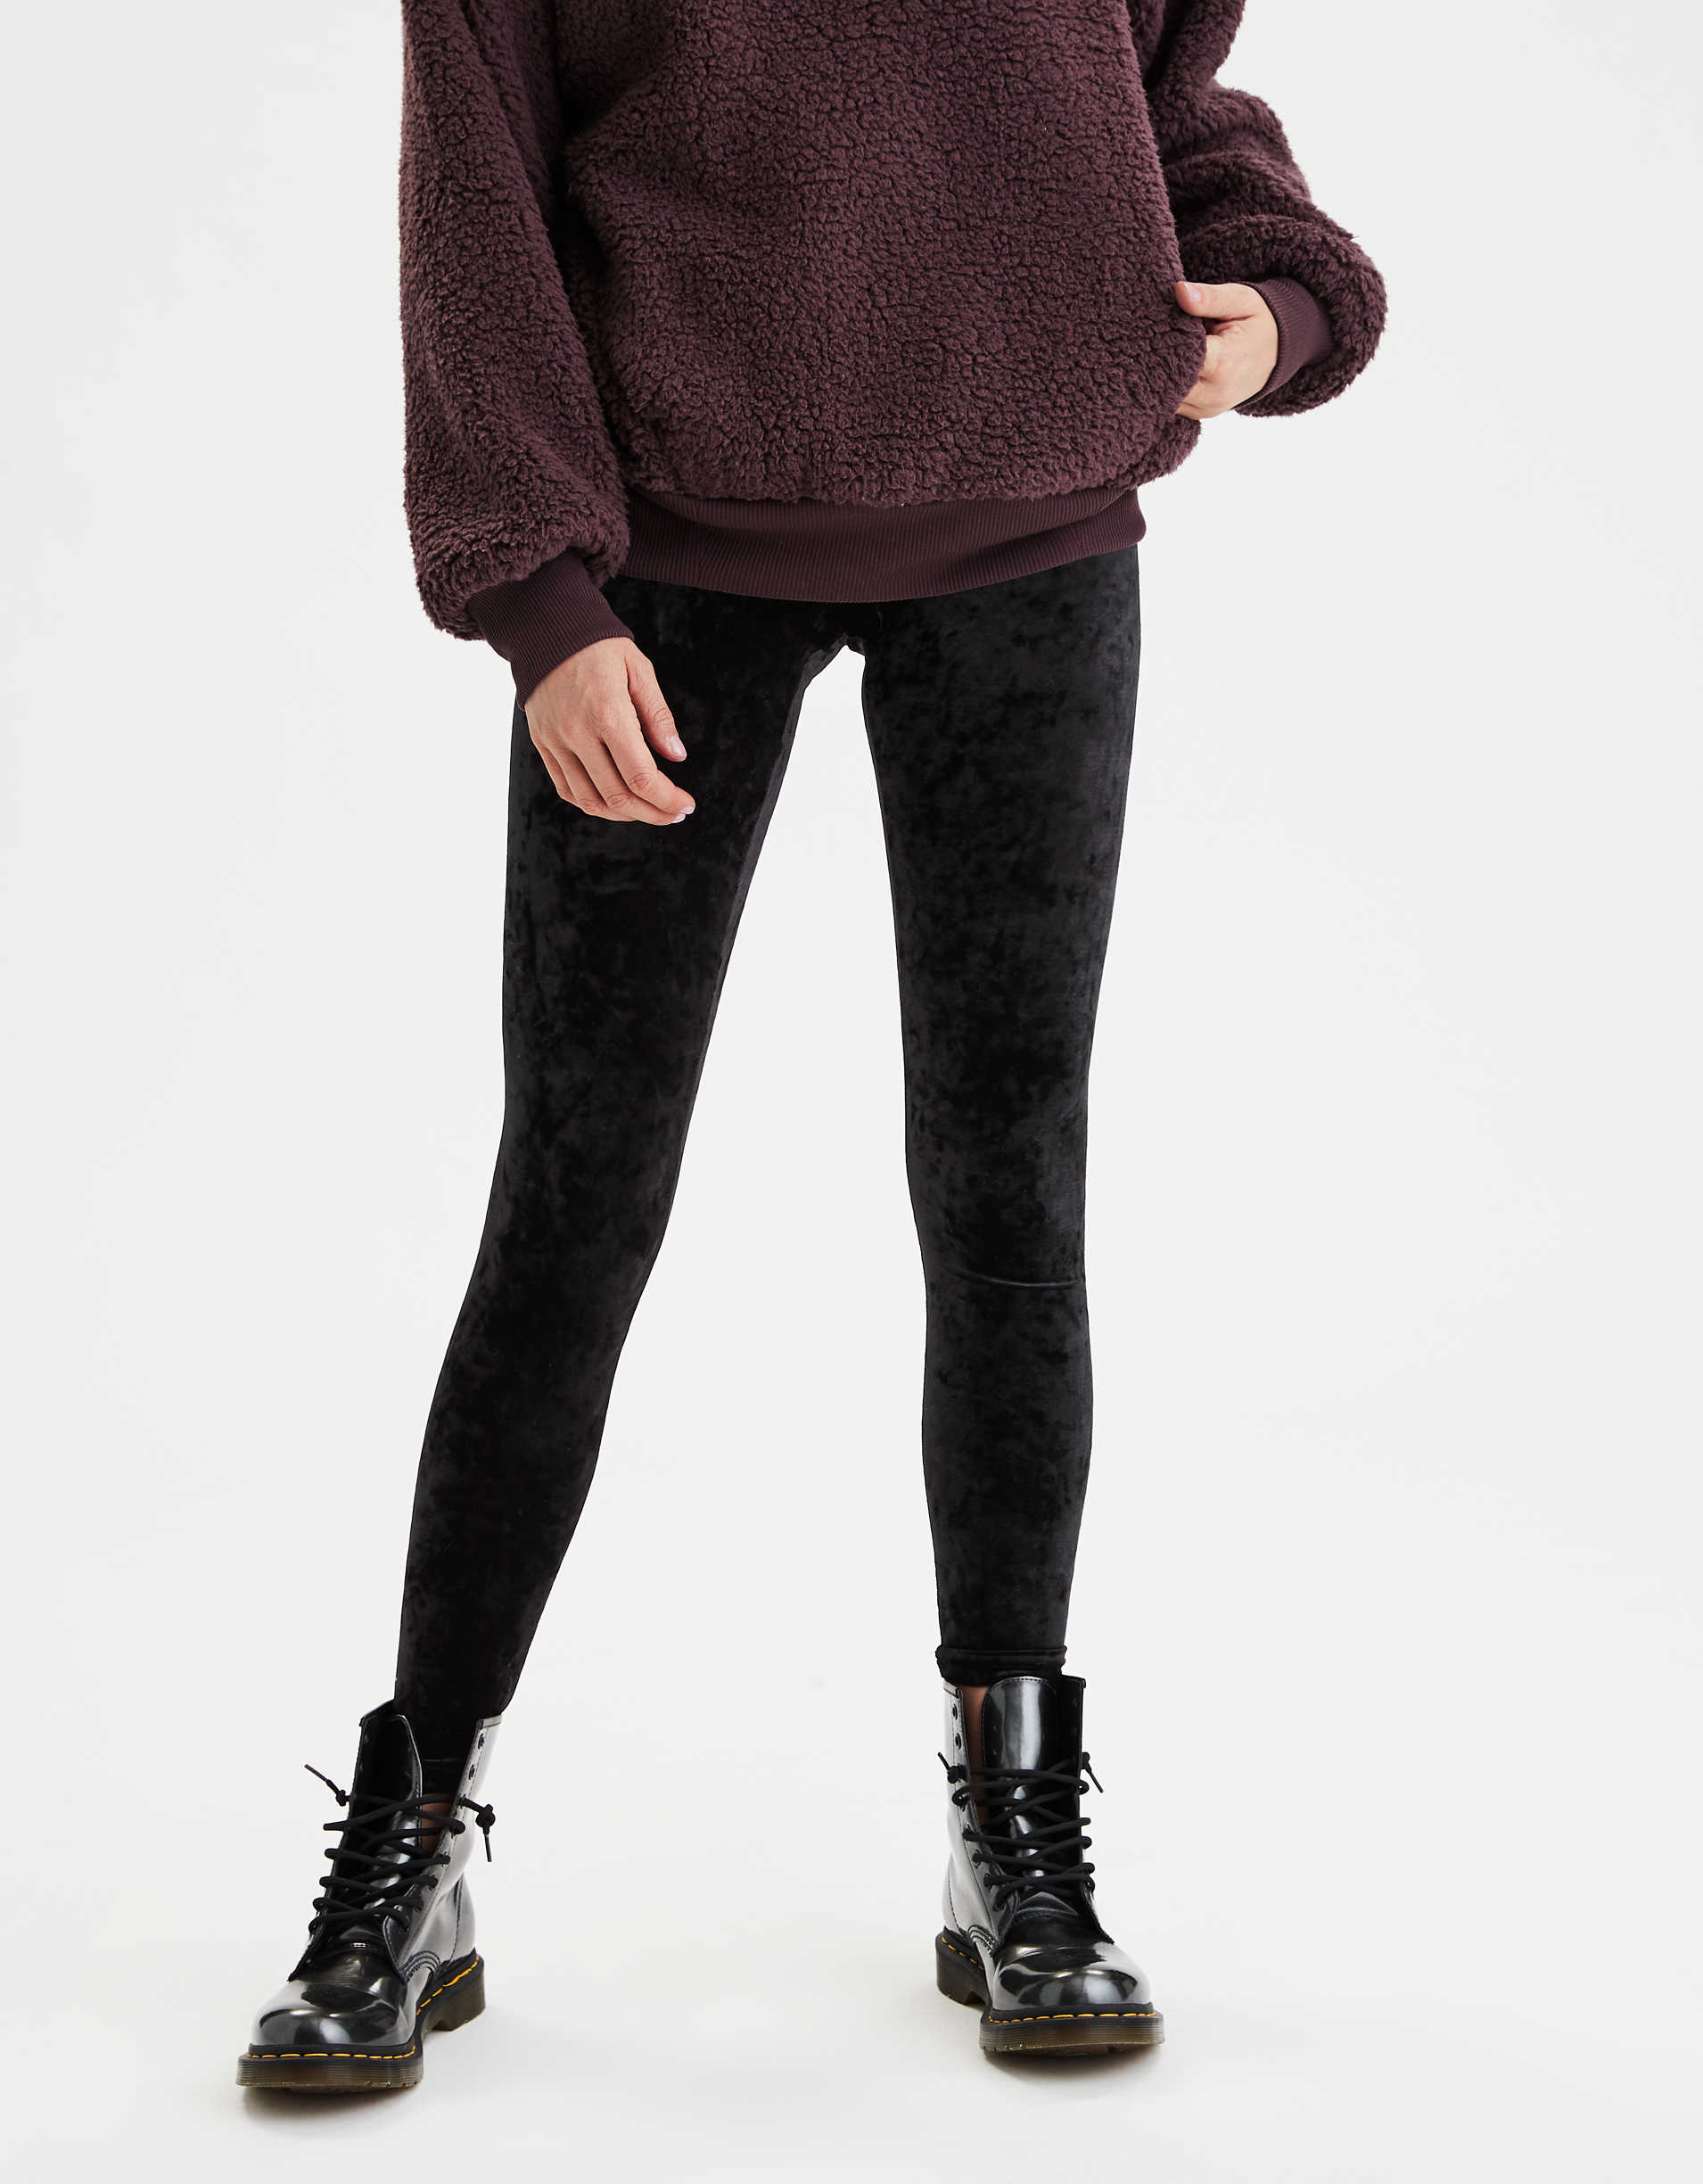 Memoi Crushed Velvet Legging